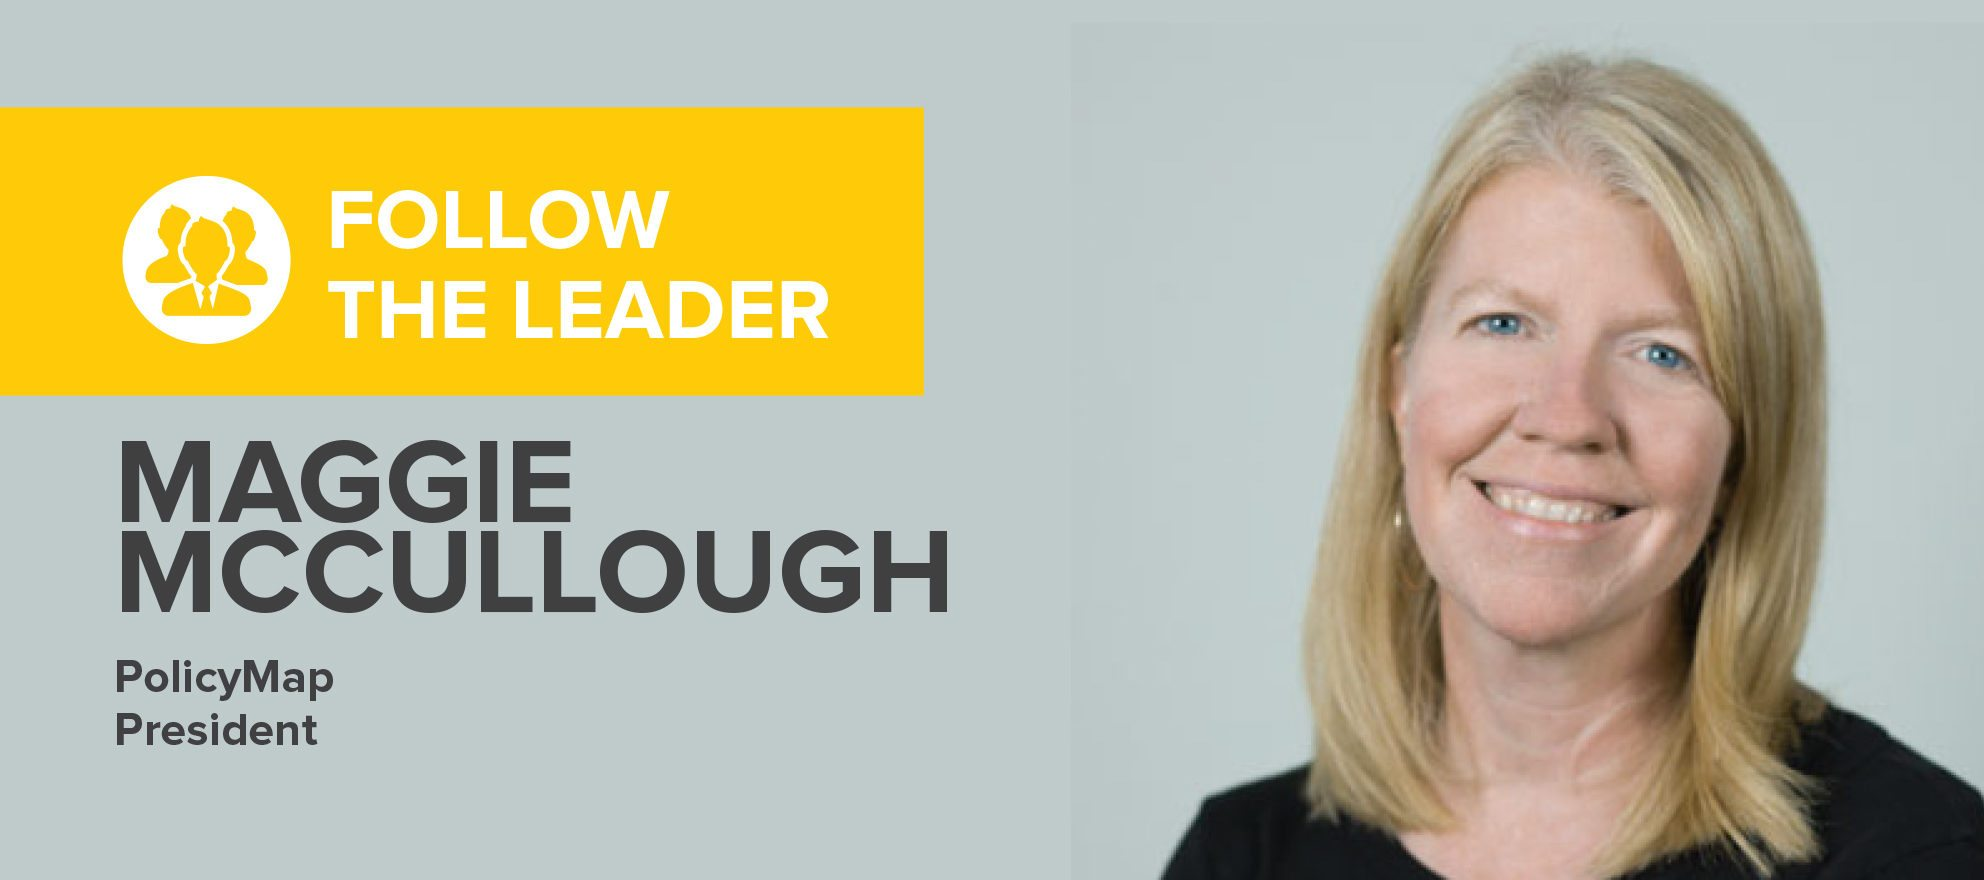 Maggie McCullough: 'We believe in the power of data to create change'